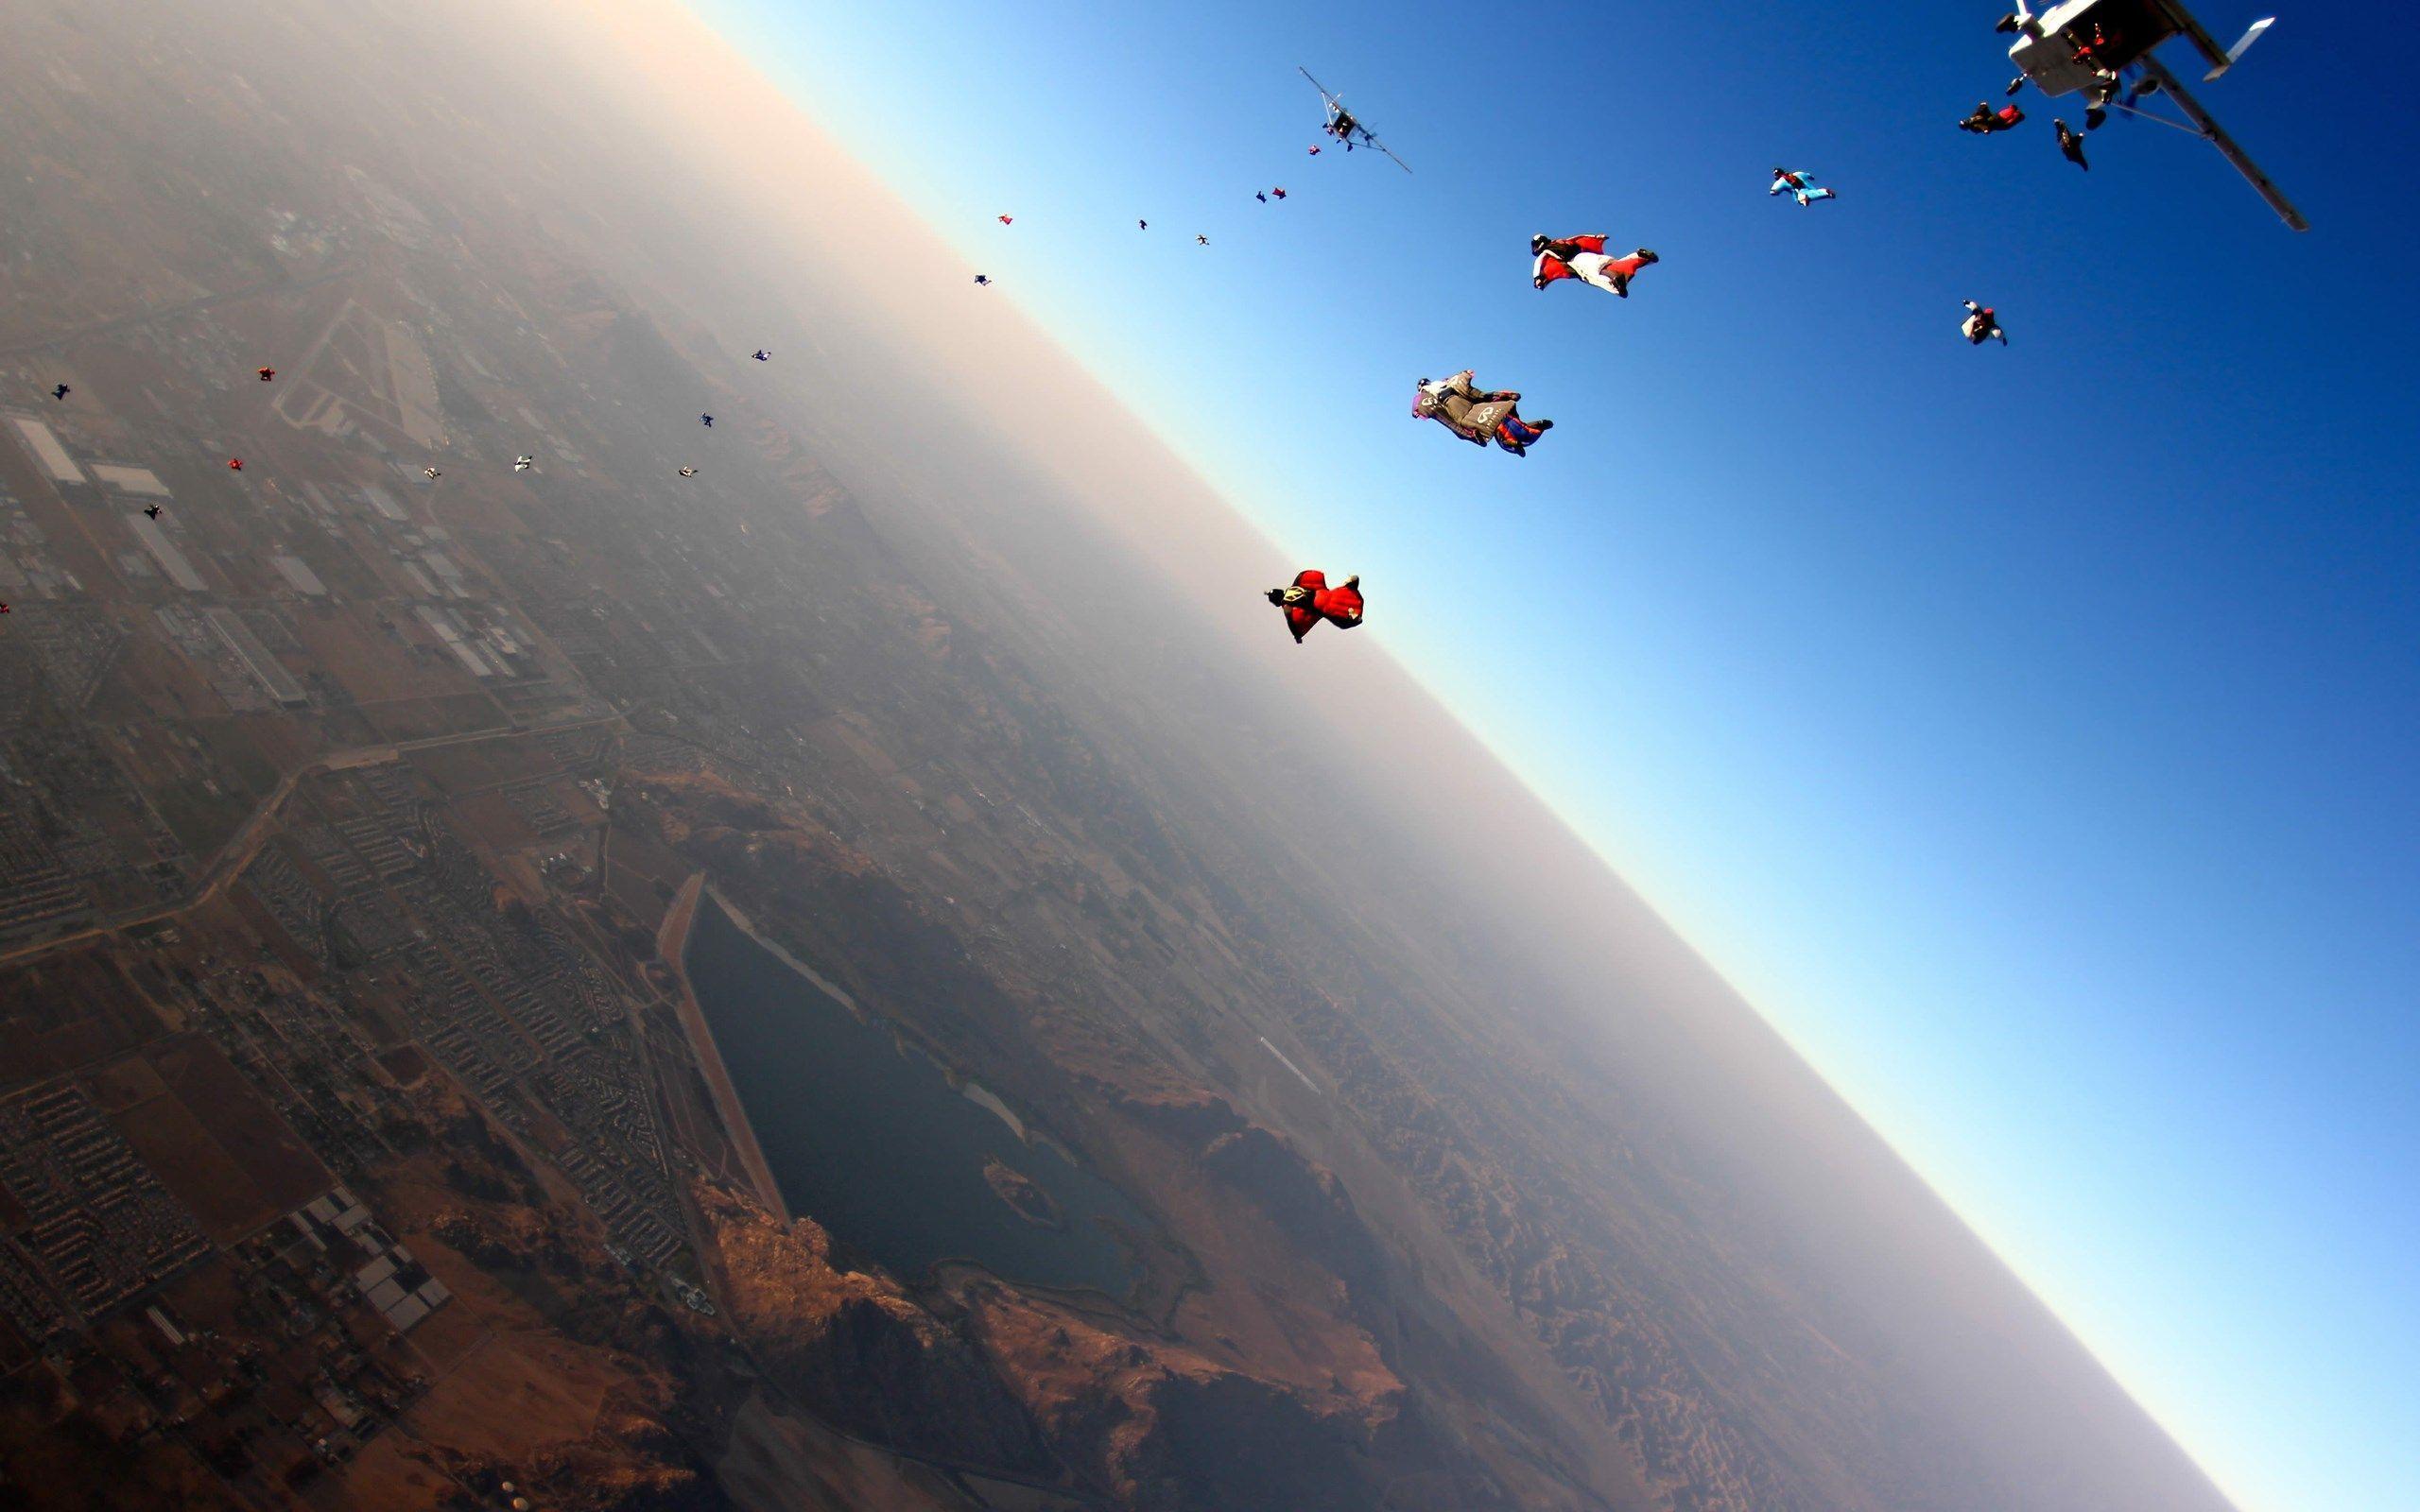 Wallpapers for Desktop: skydiving